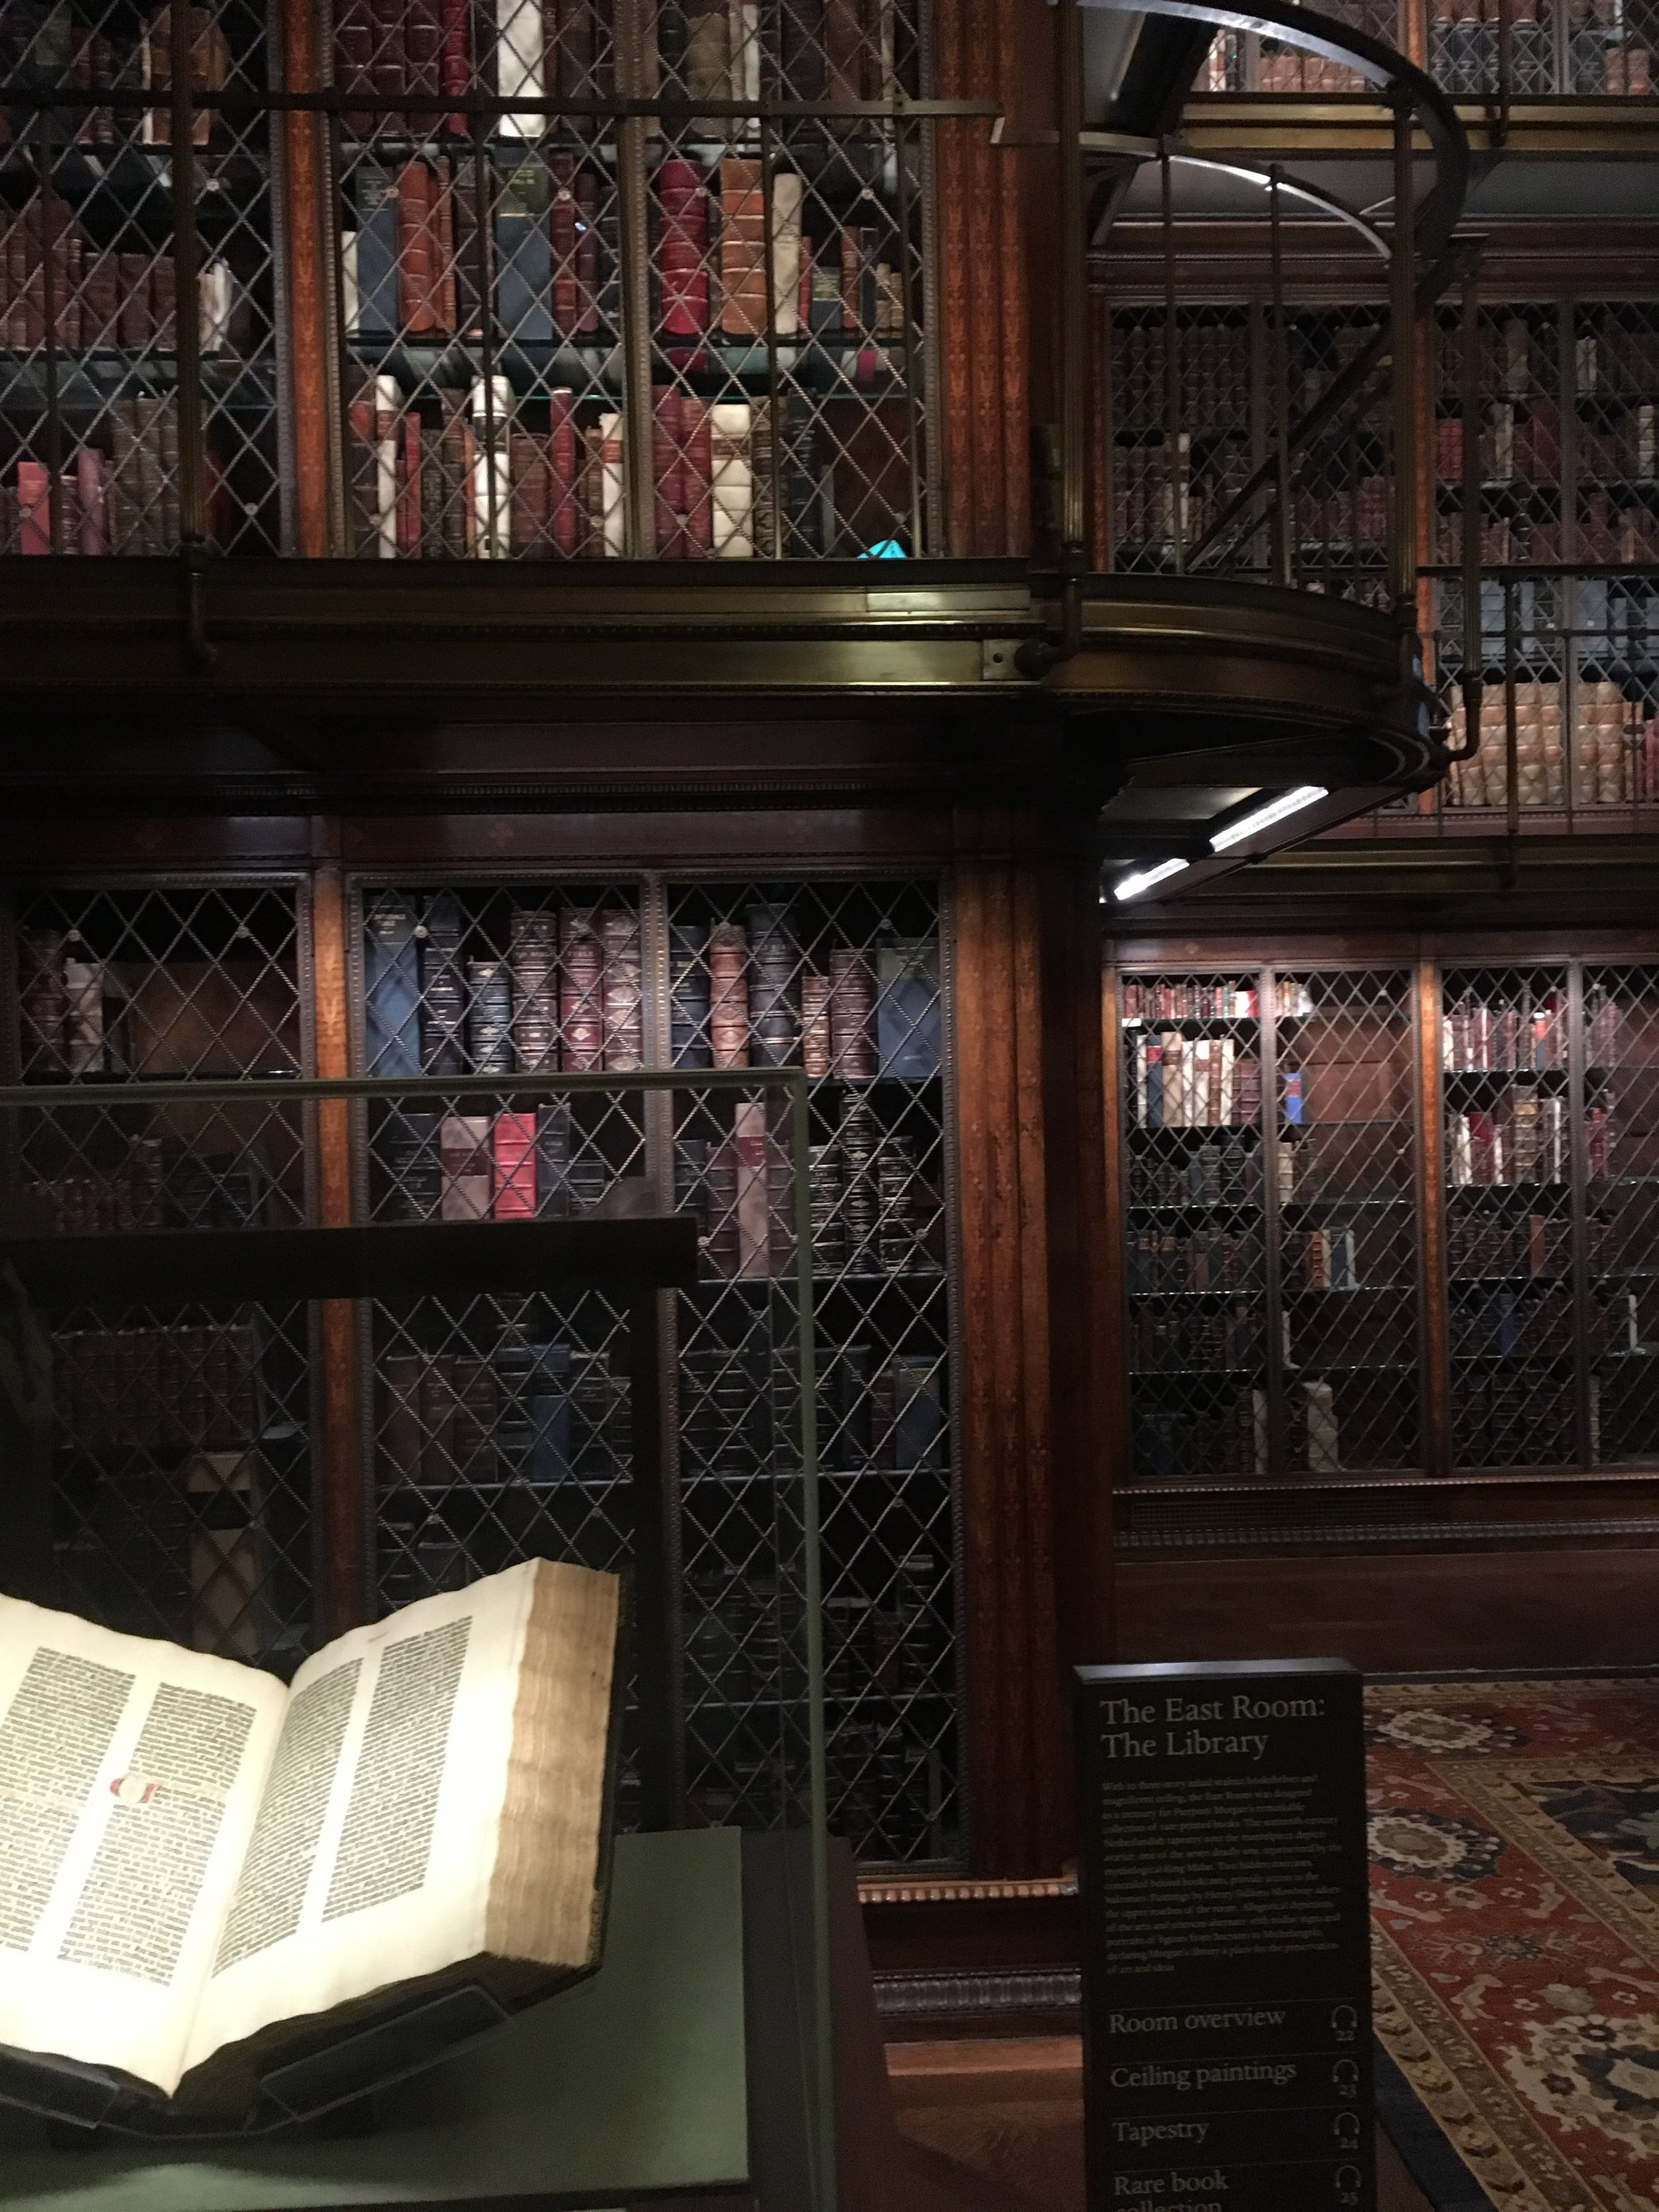 One of three Gutenberg Bibles in The Morgan's collection.